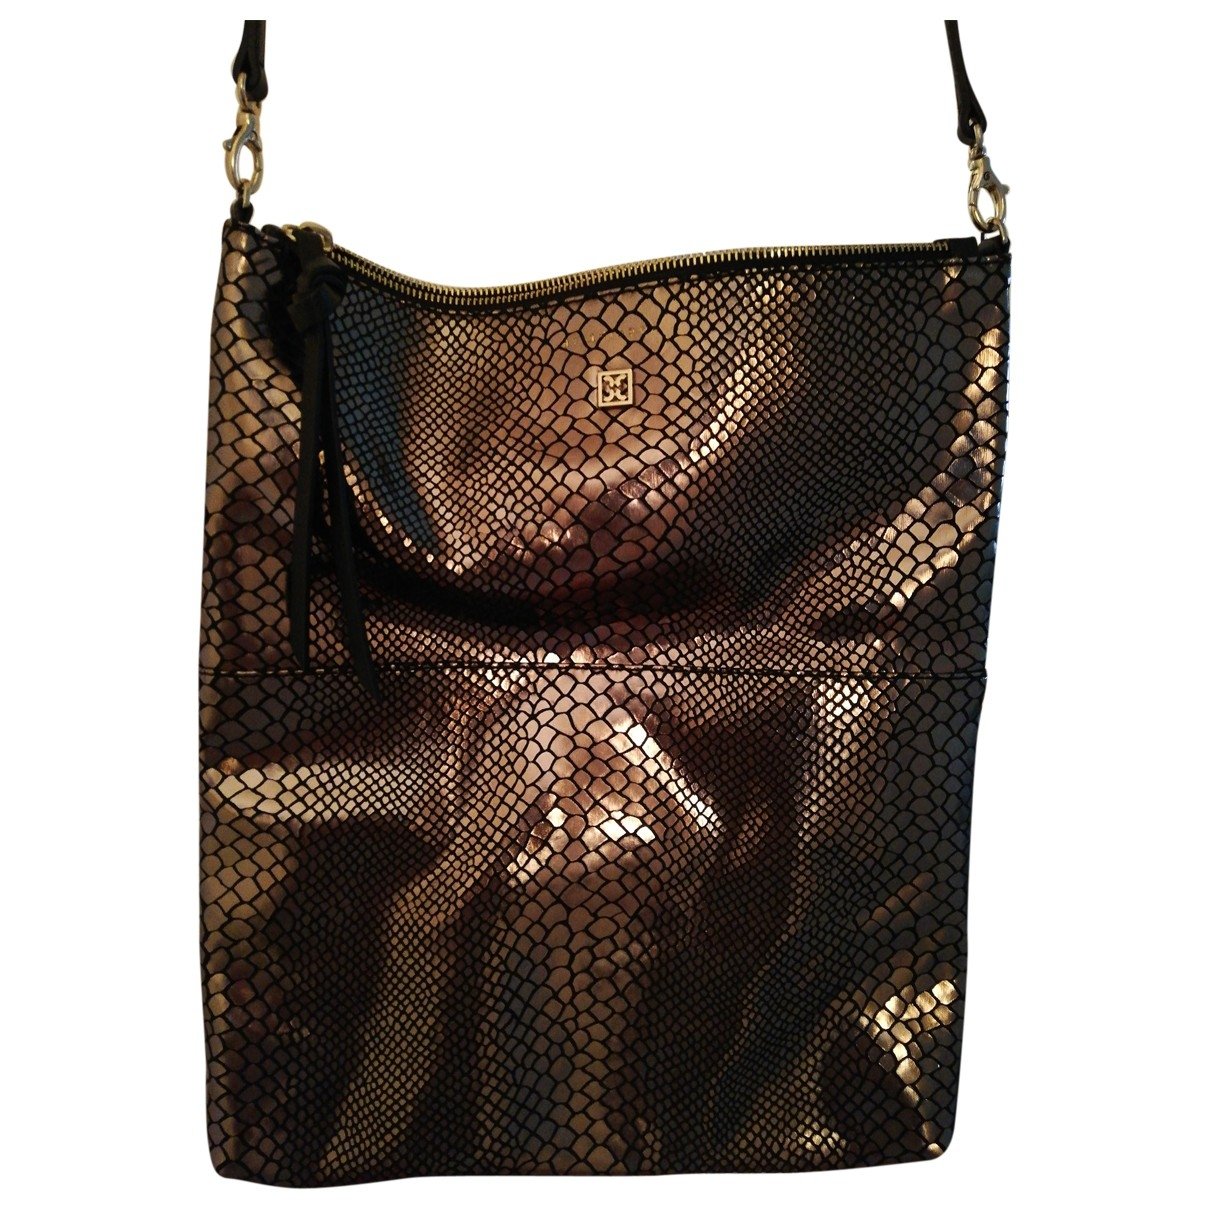 Coccinelle \N Gold Leather handbag for Women \N